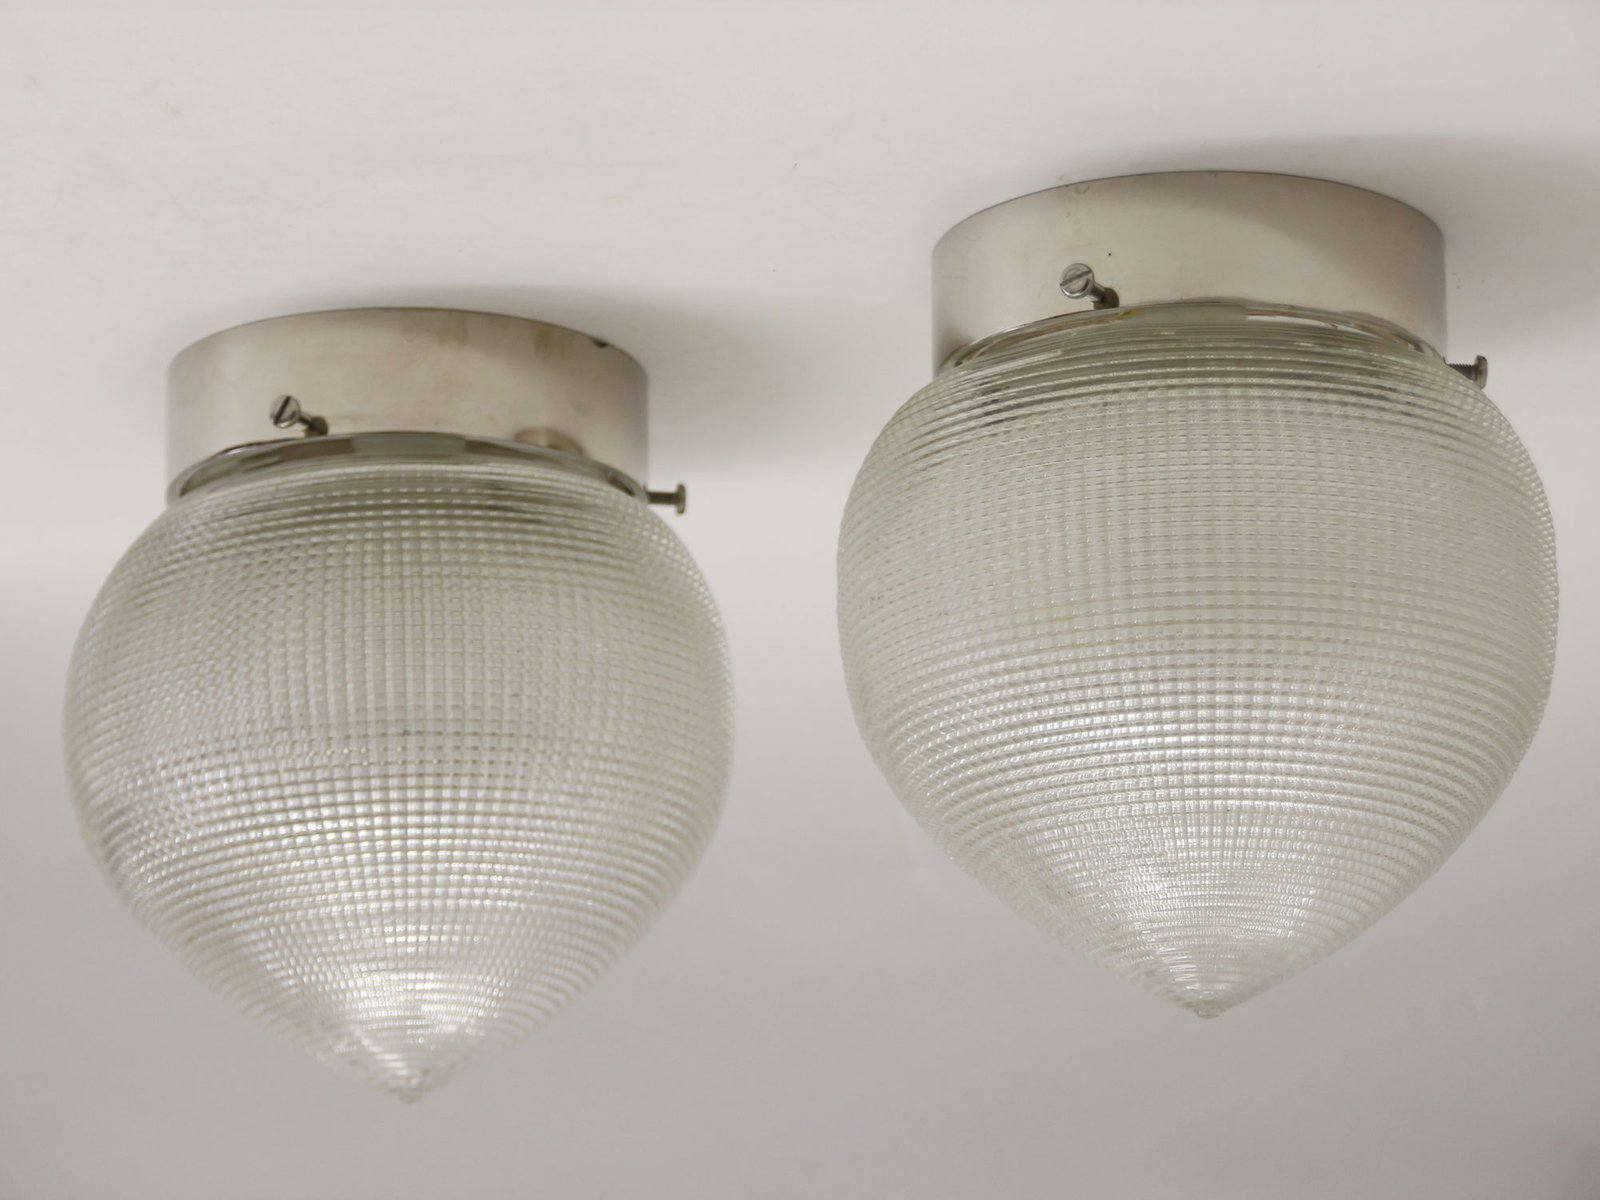 Vintage french industrial ceiling lights from holophane set of 2 vintage french industrial ceiling lights from holophane set of 2 mozeypictures Image collections